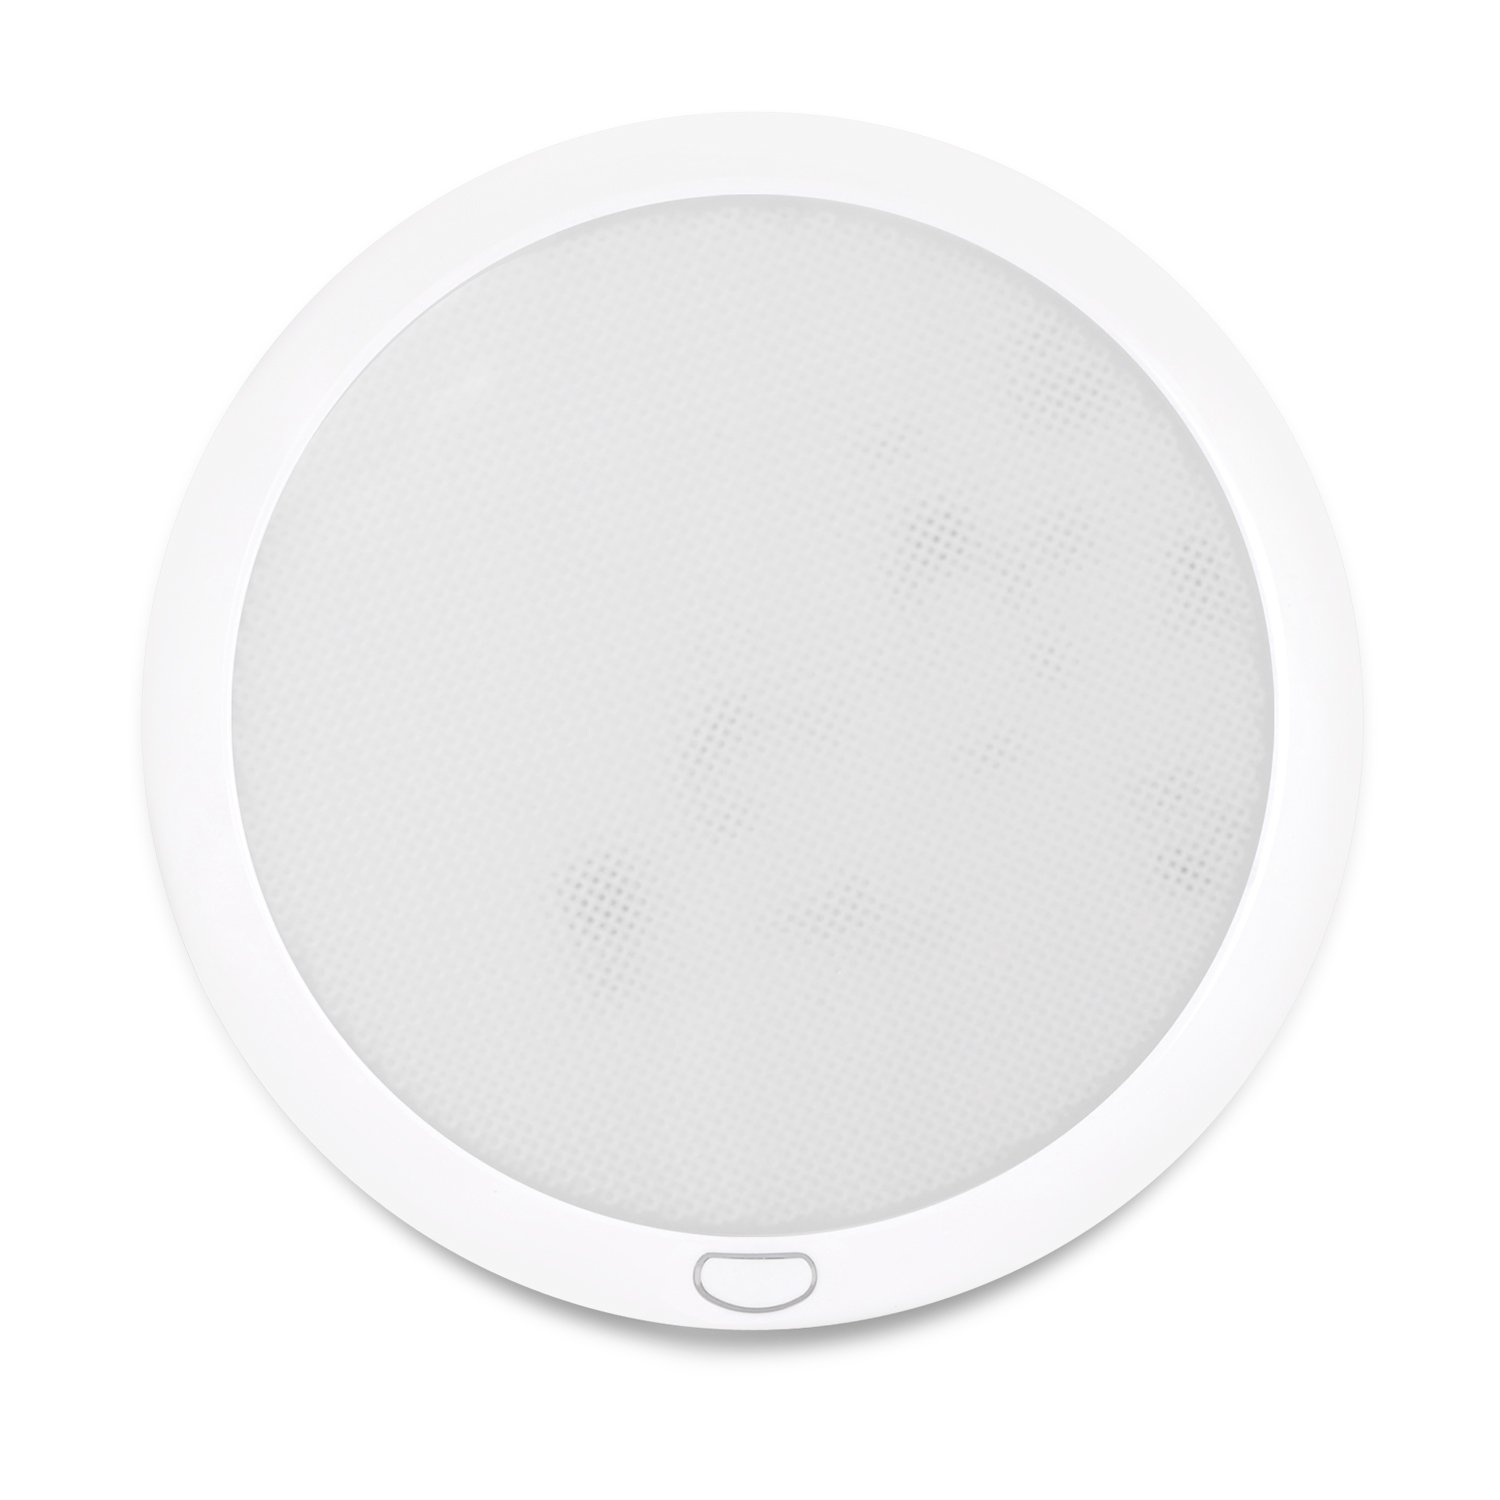 Dream Lighting 12volt LED Panel Ceiling Dome Light Fixture with Switch for RV Motorhome & Marine-8.5 Inches, with Memory Function, Cool White & Blue